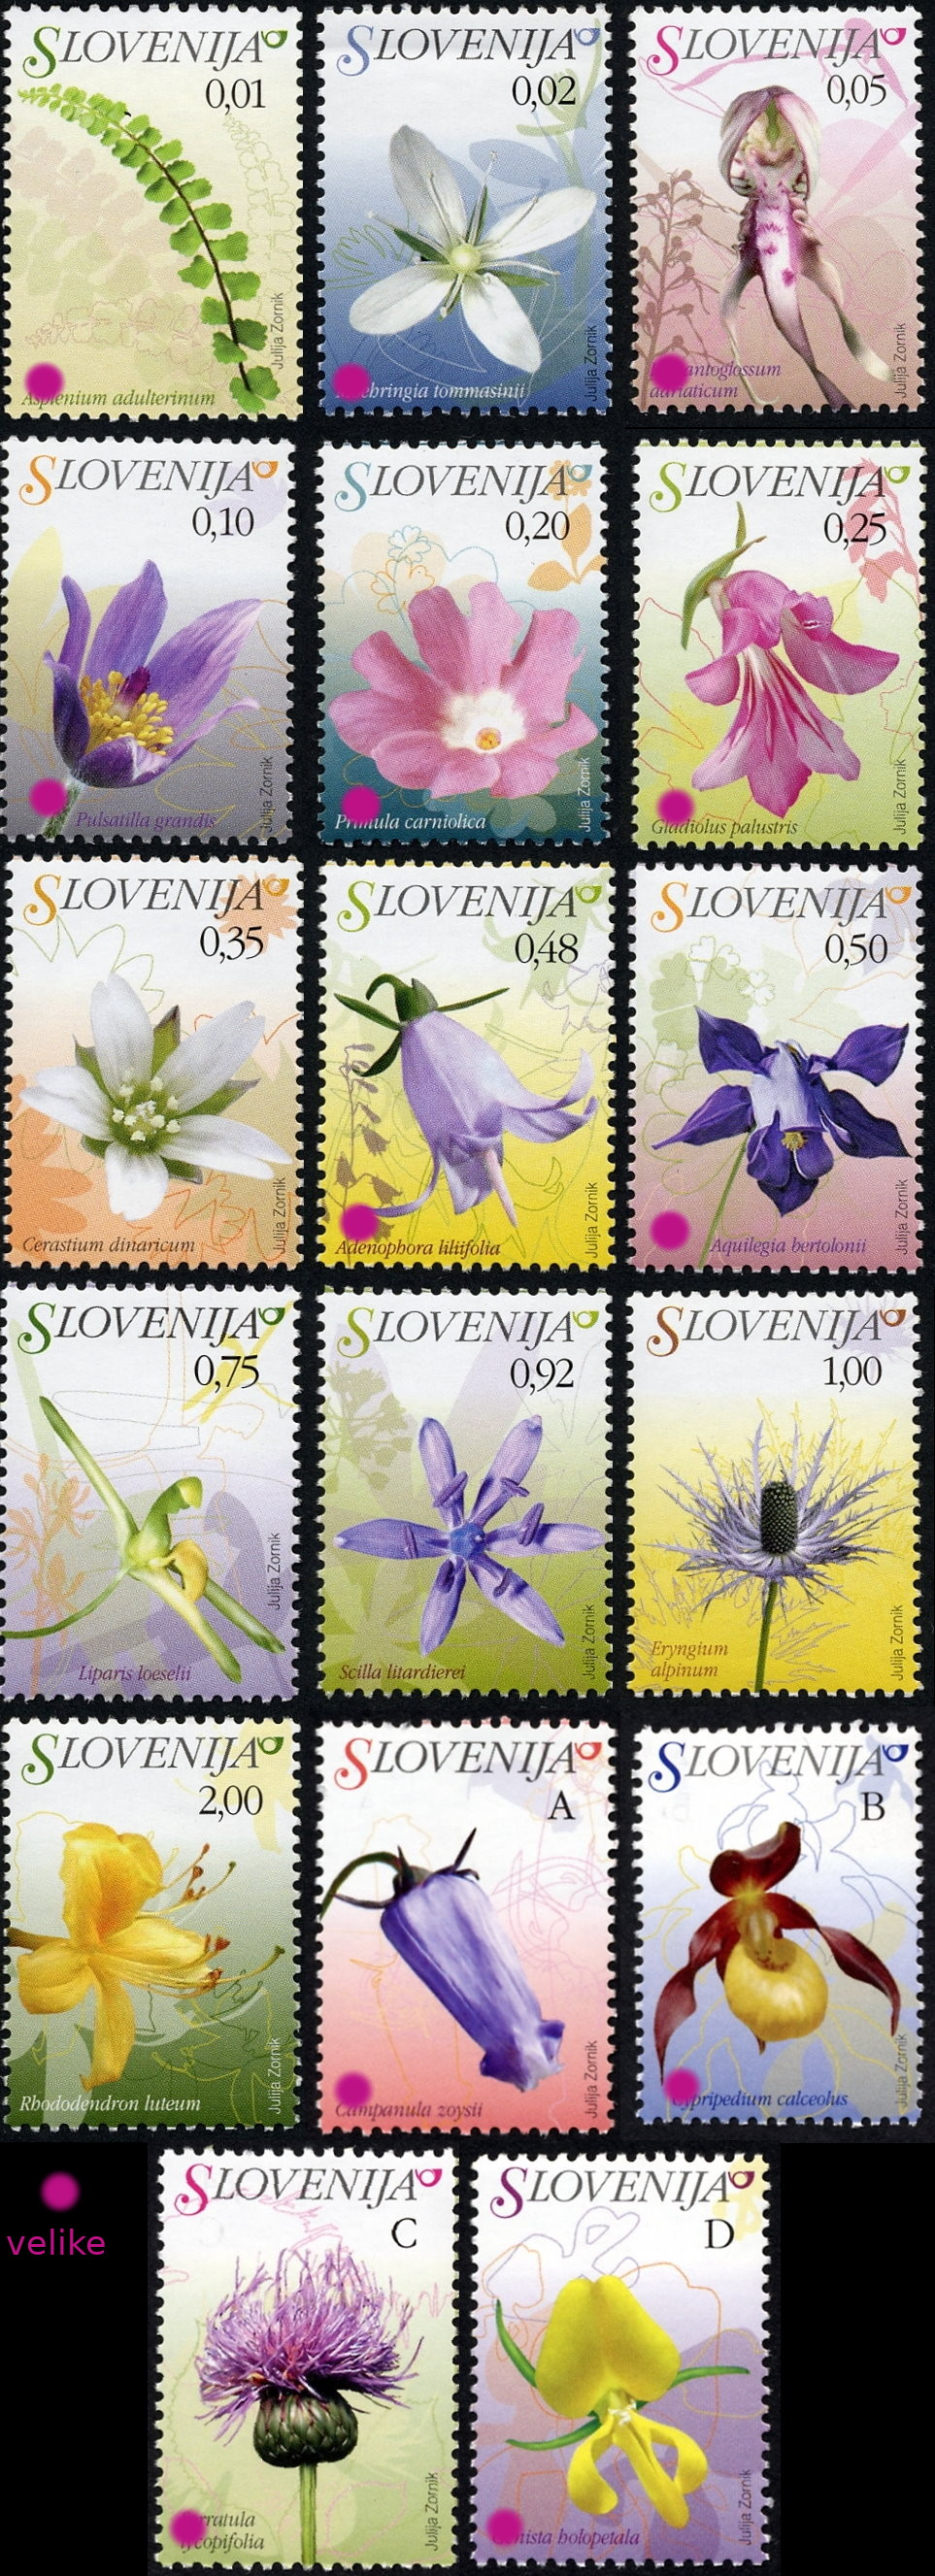 Slovenia stamps FLORA-velike